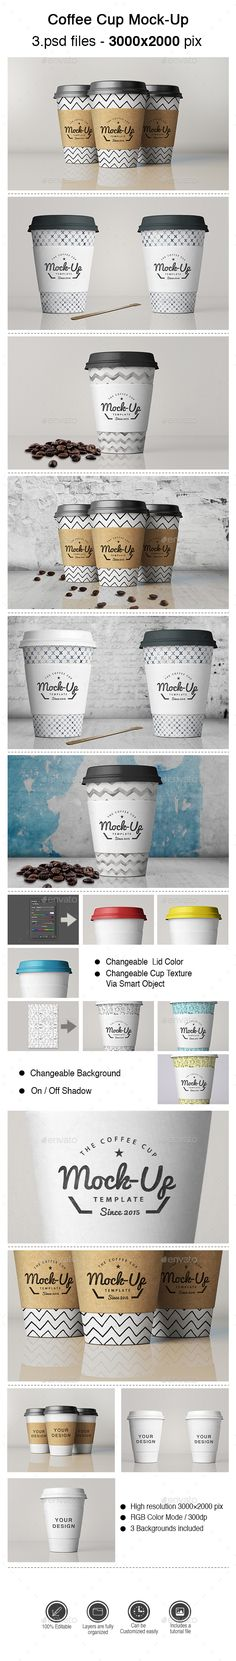 Coffee Cup Mock-Up - Product Mock-Ups Graphics Mini Coffee Cups, Coffee Cup Holder, Coffee Cup Cozy, Ceramic Coffee Cups, Coffee Mugs, Coffee Shop Branding, Cafe Branding, Coffee Packaging, Cupcake Packaging